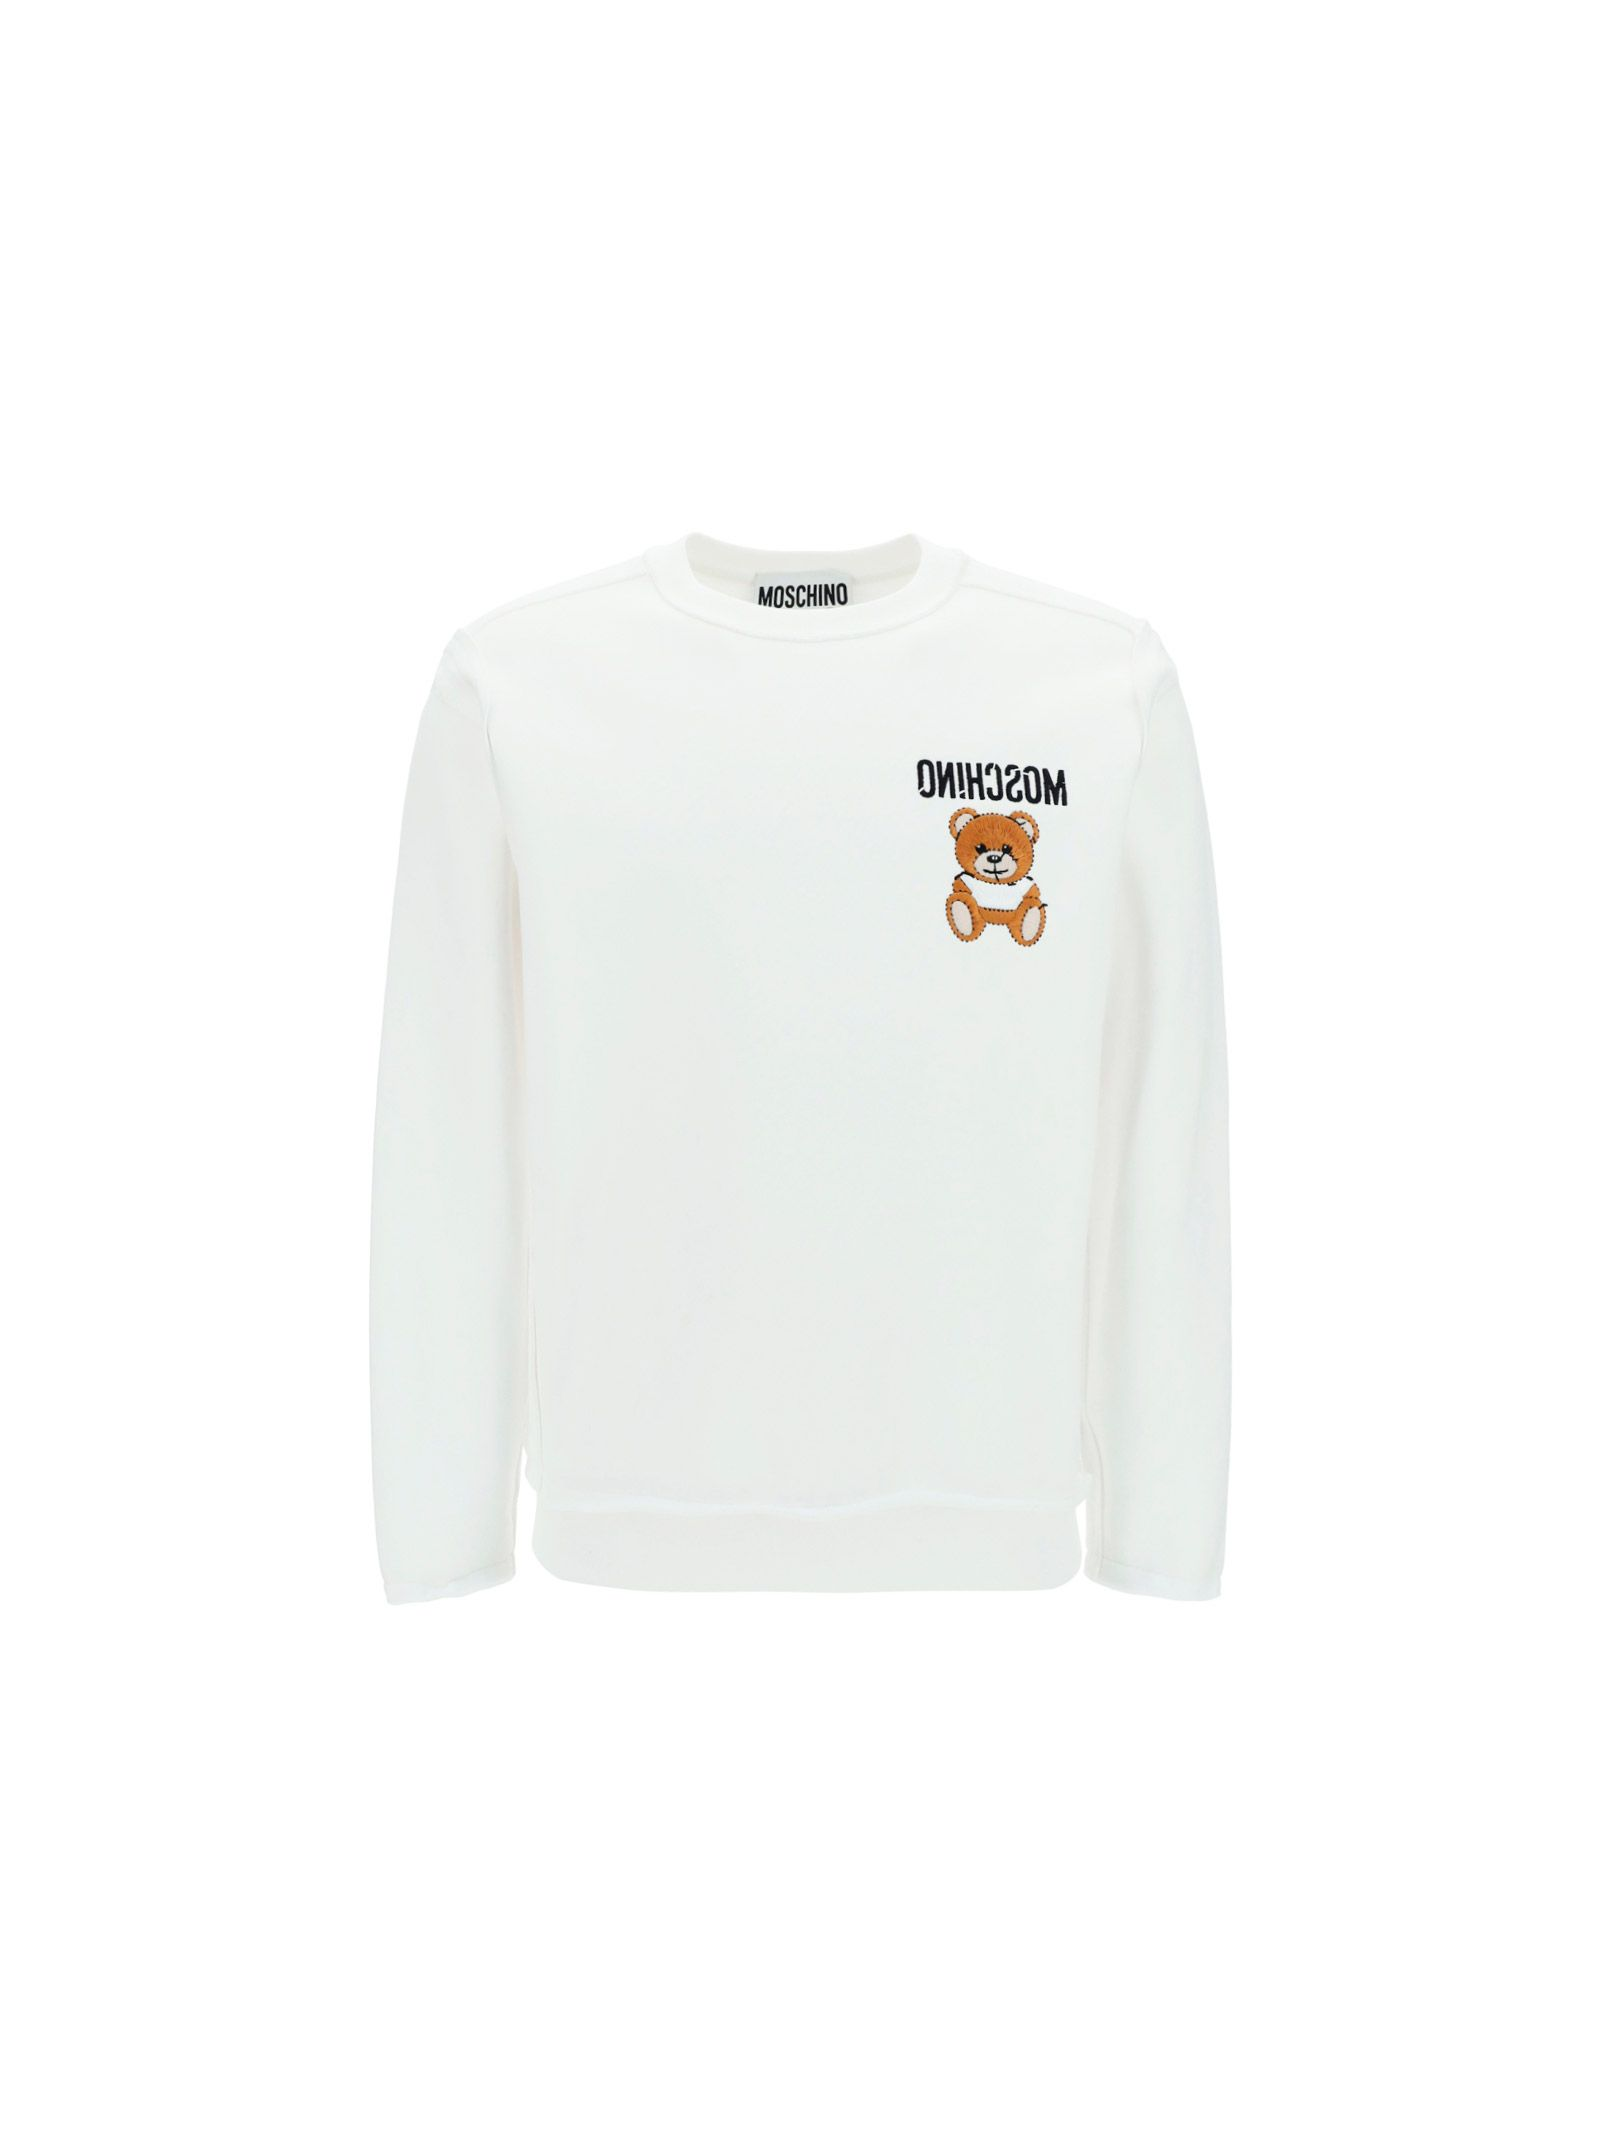 Moschino MOSCHINO MEN'S 17742271001 WHITE OTHER MATERIALS SWEATSHIRT